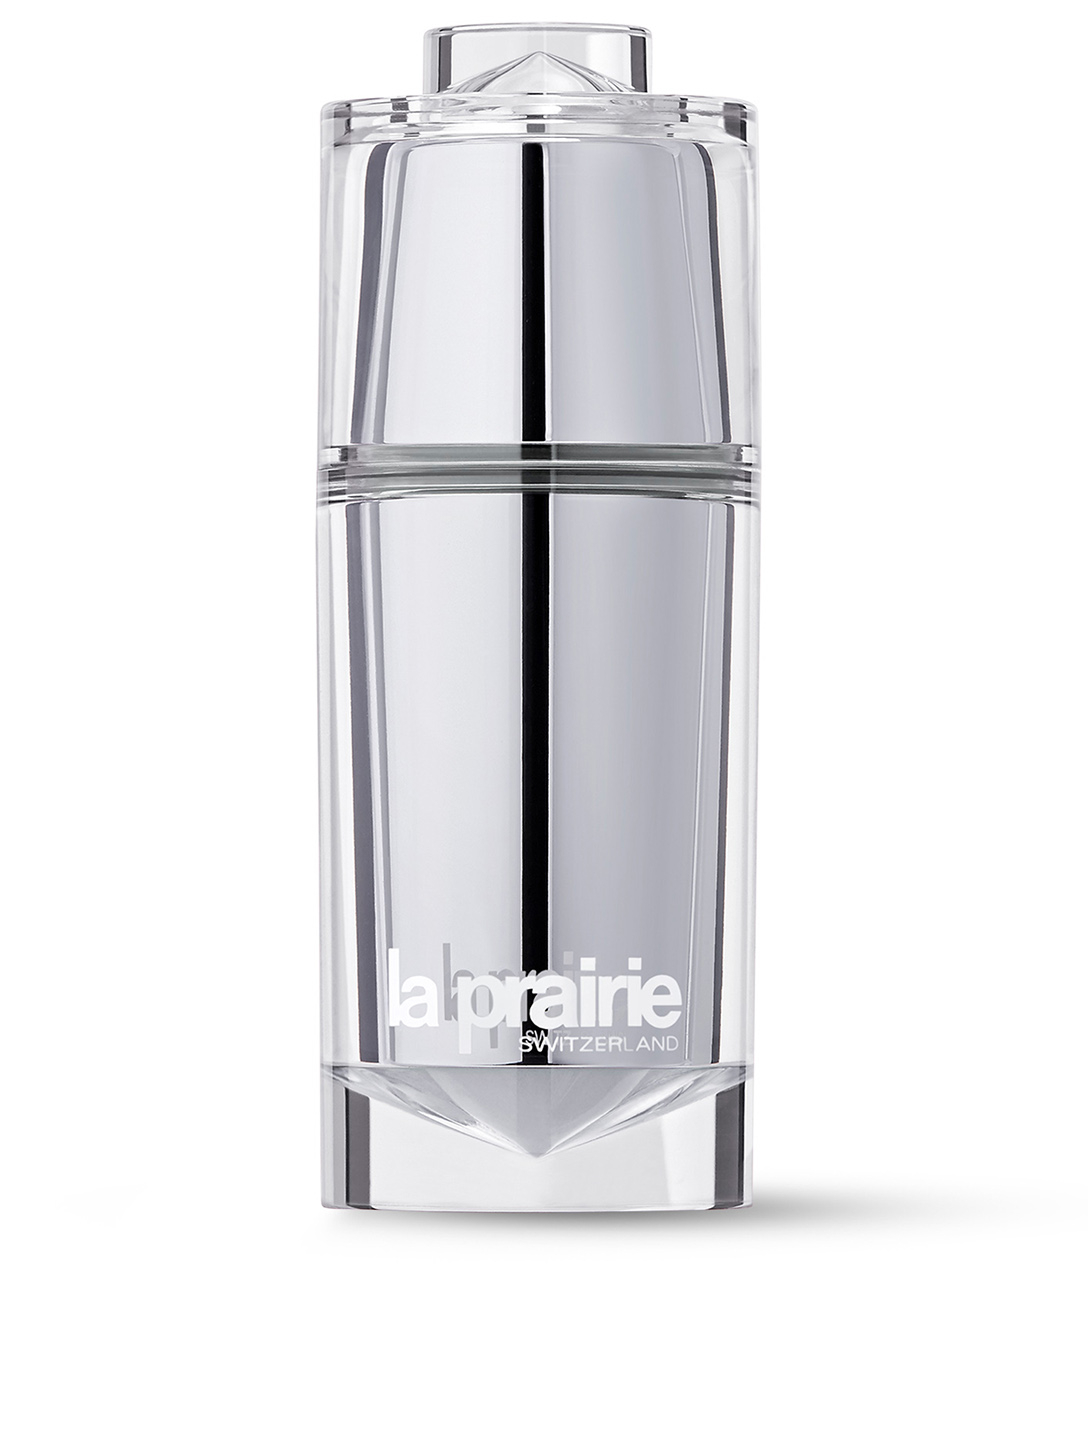 LA PRAIRIE Cellular Eye Essence Platinum Rare Beauty